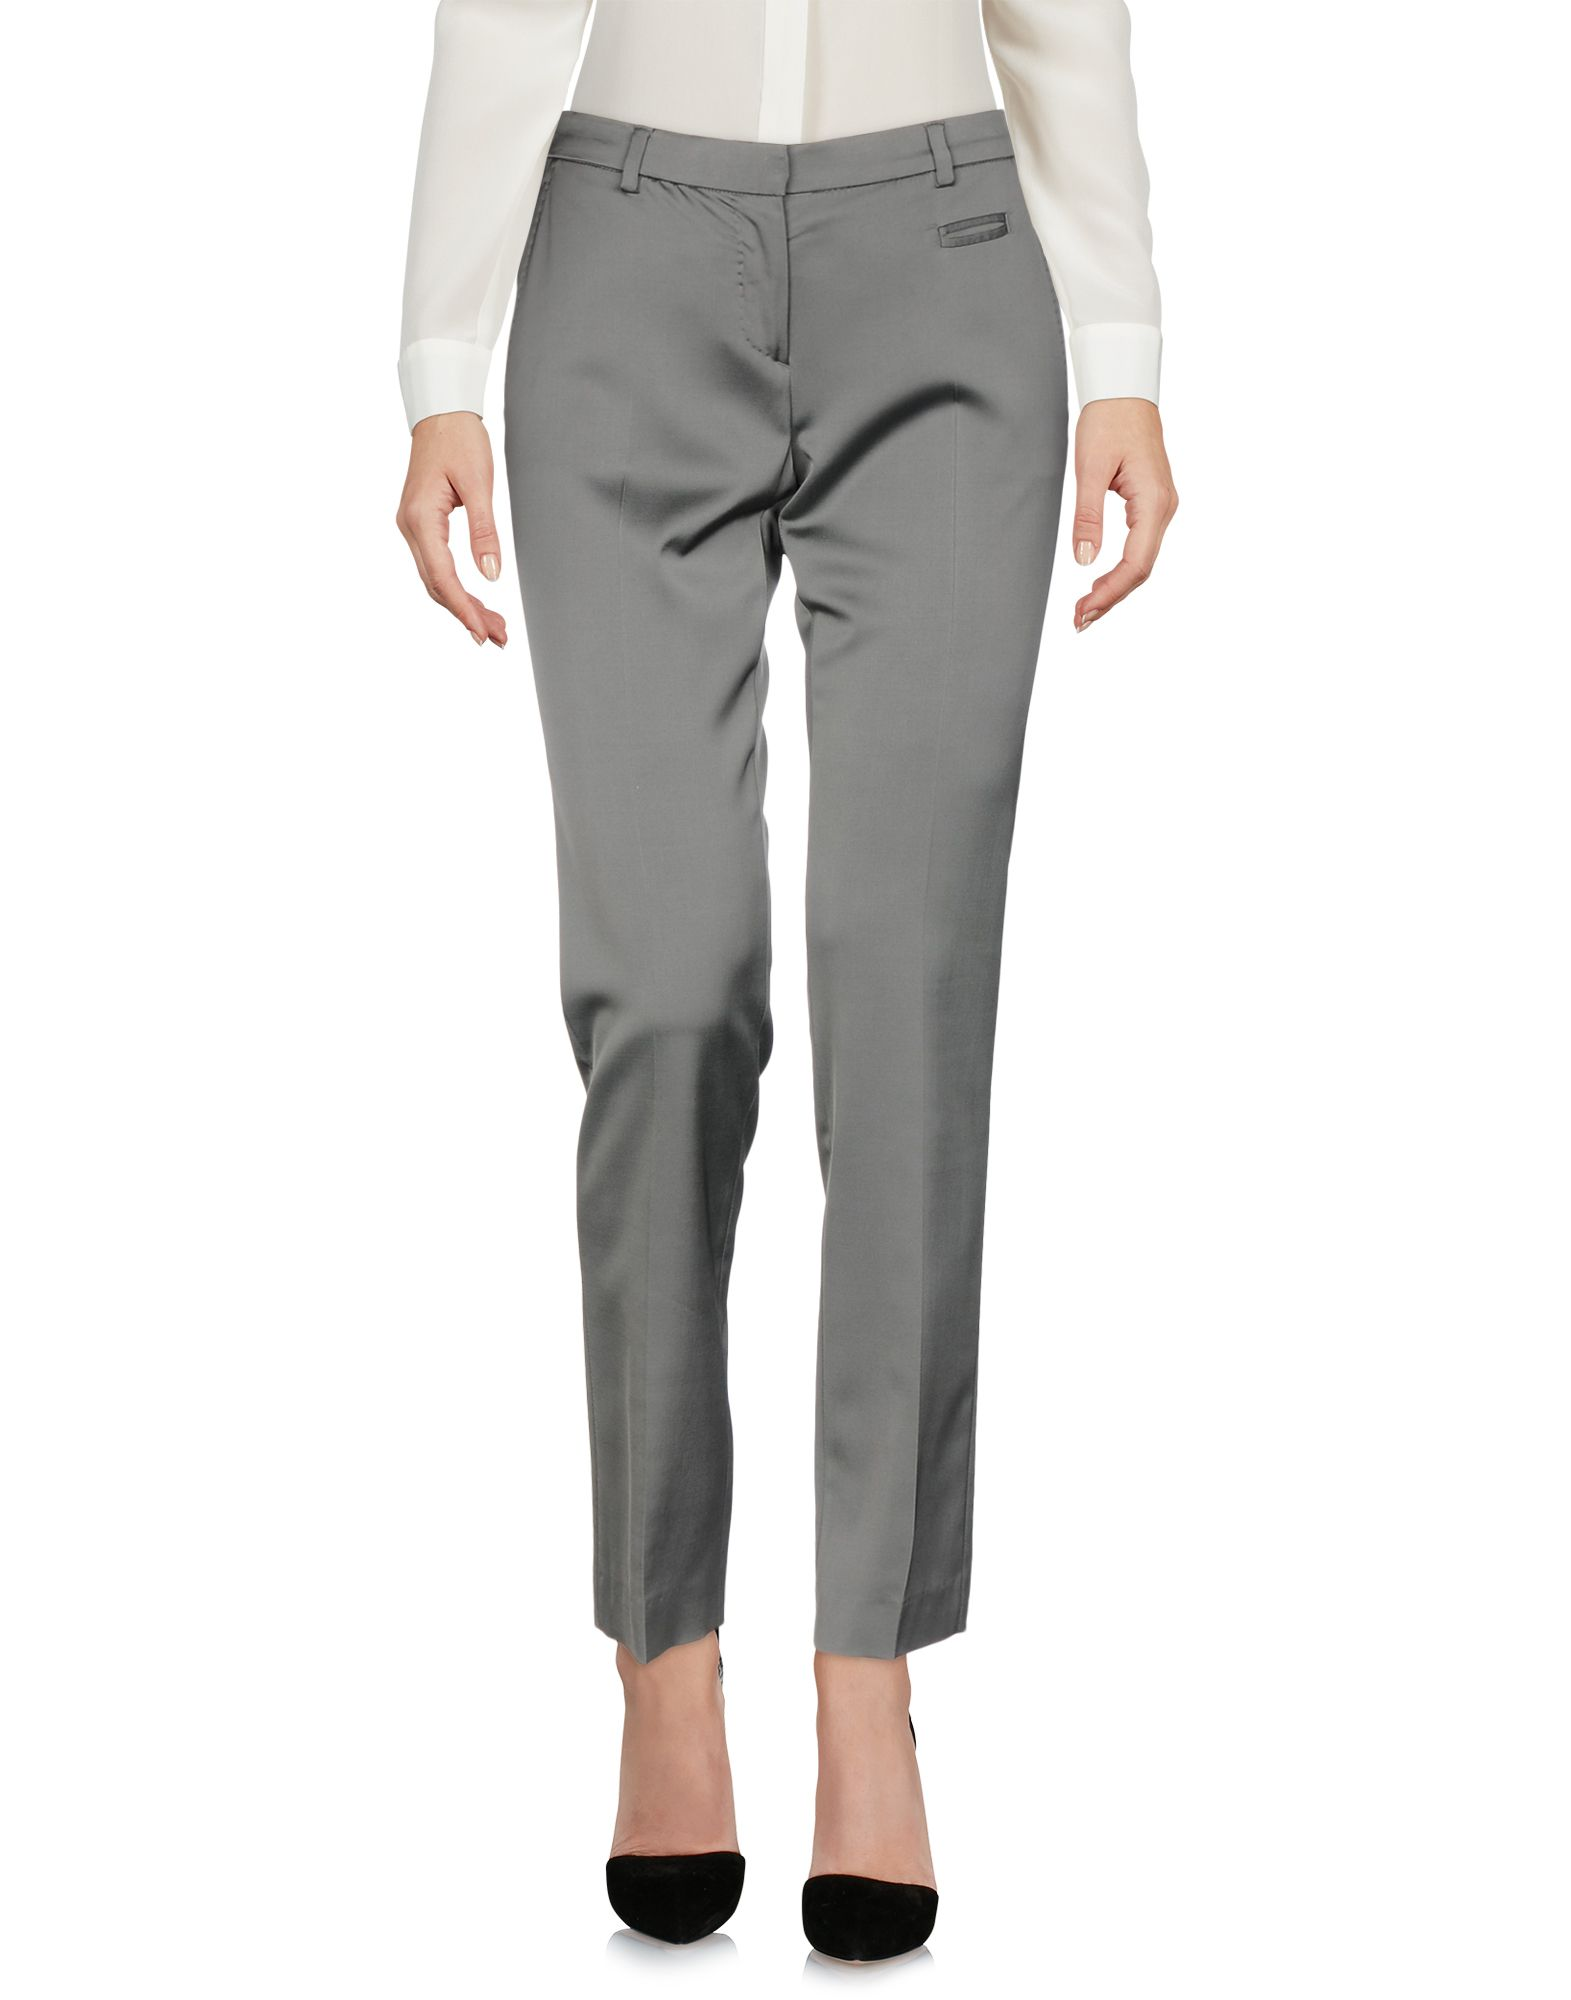 Pantalone True Royal Donna - Acquista online su bqWA6vDSzo